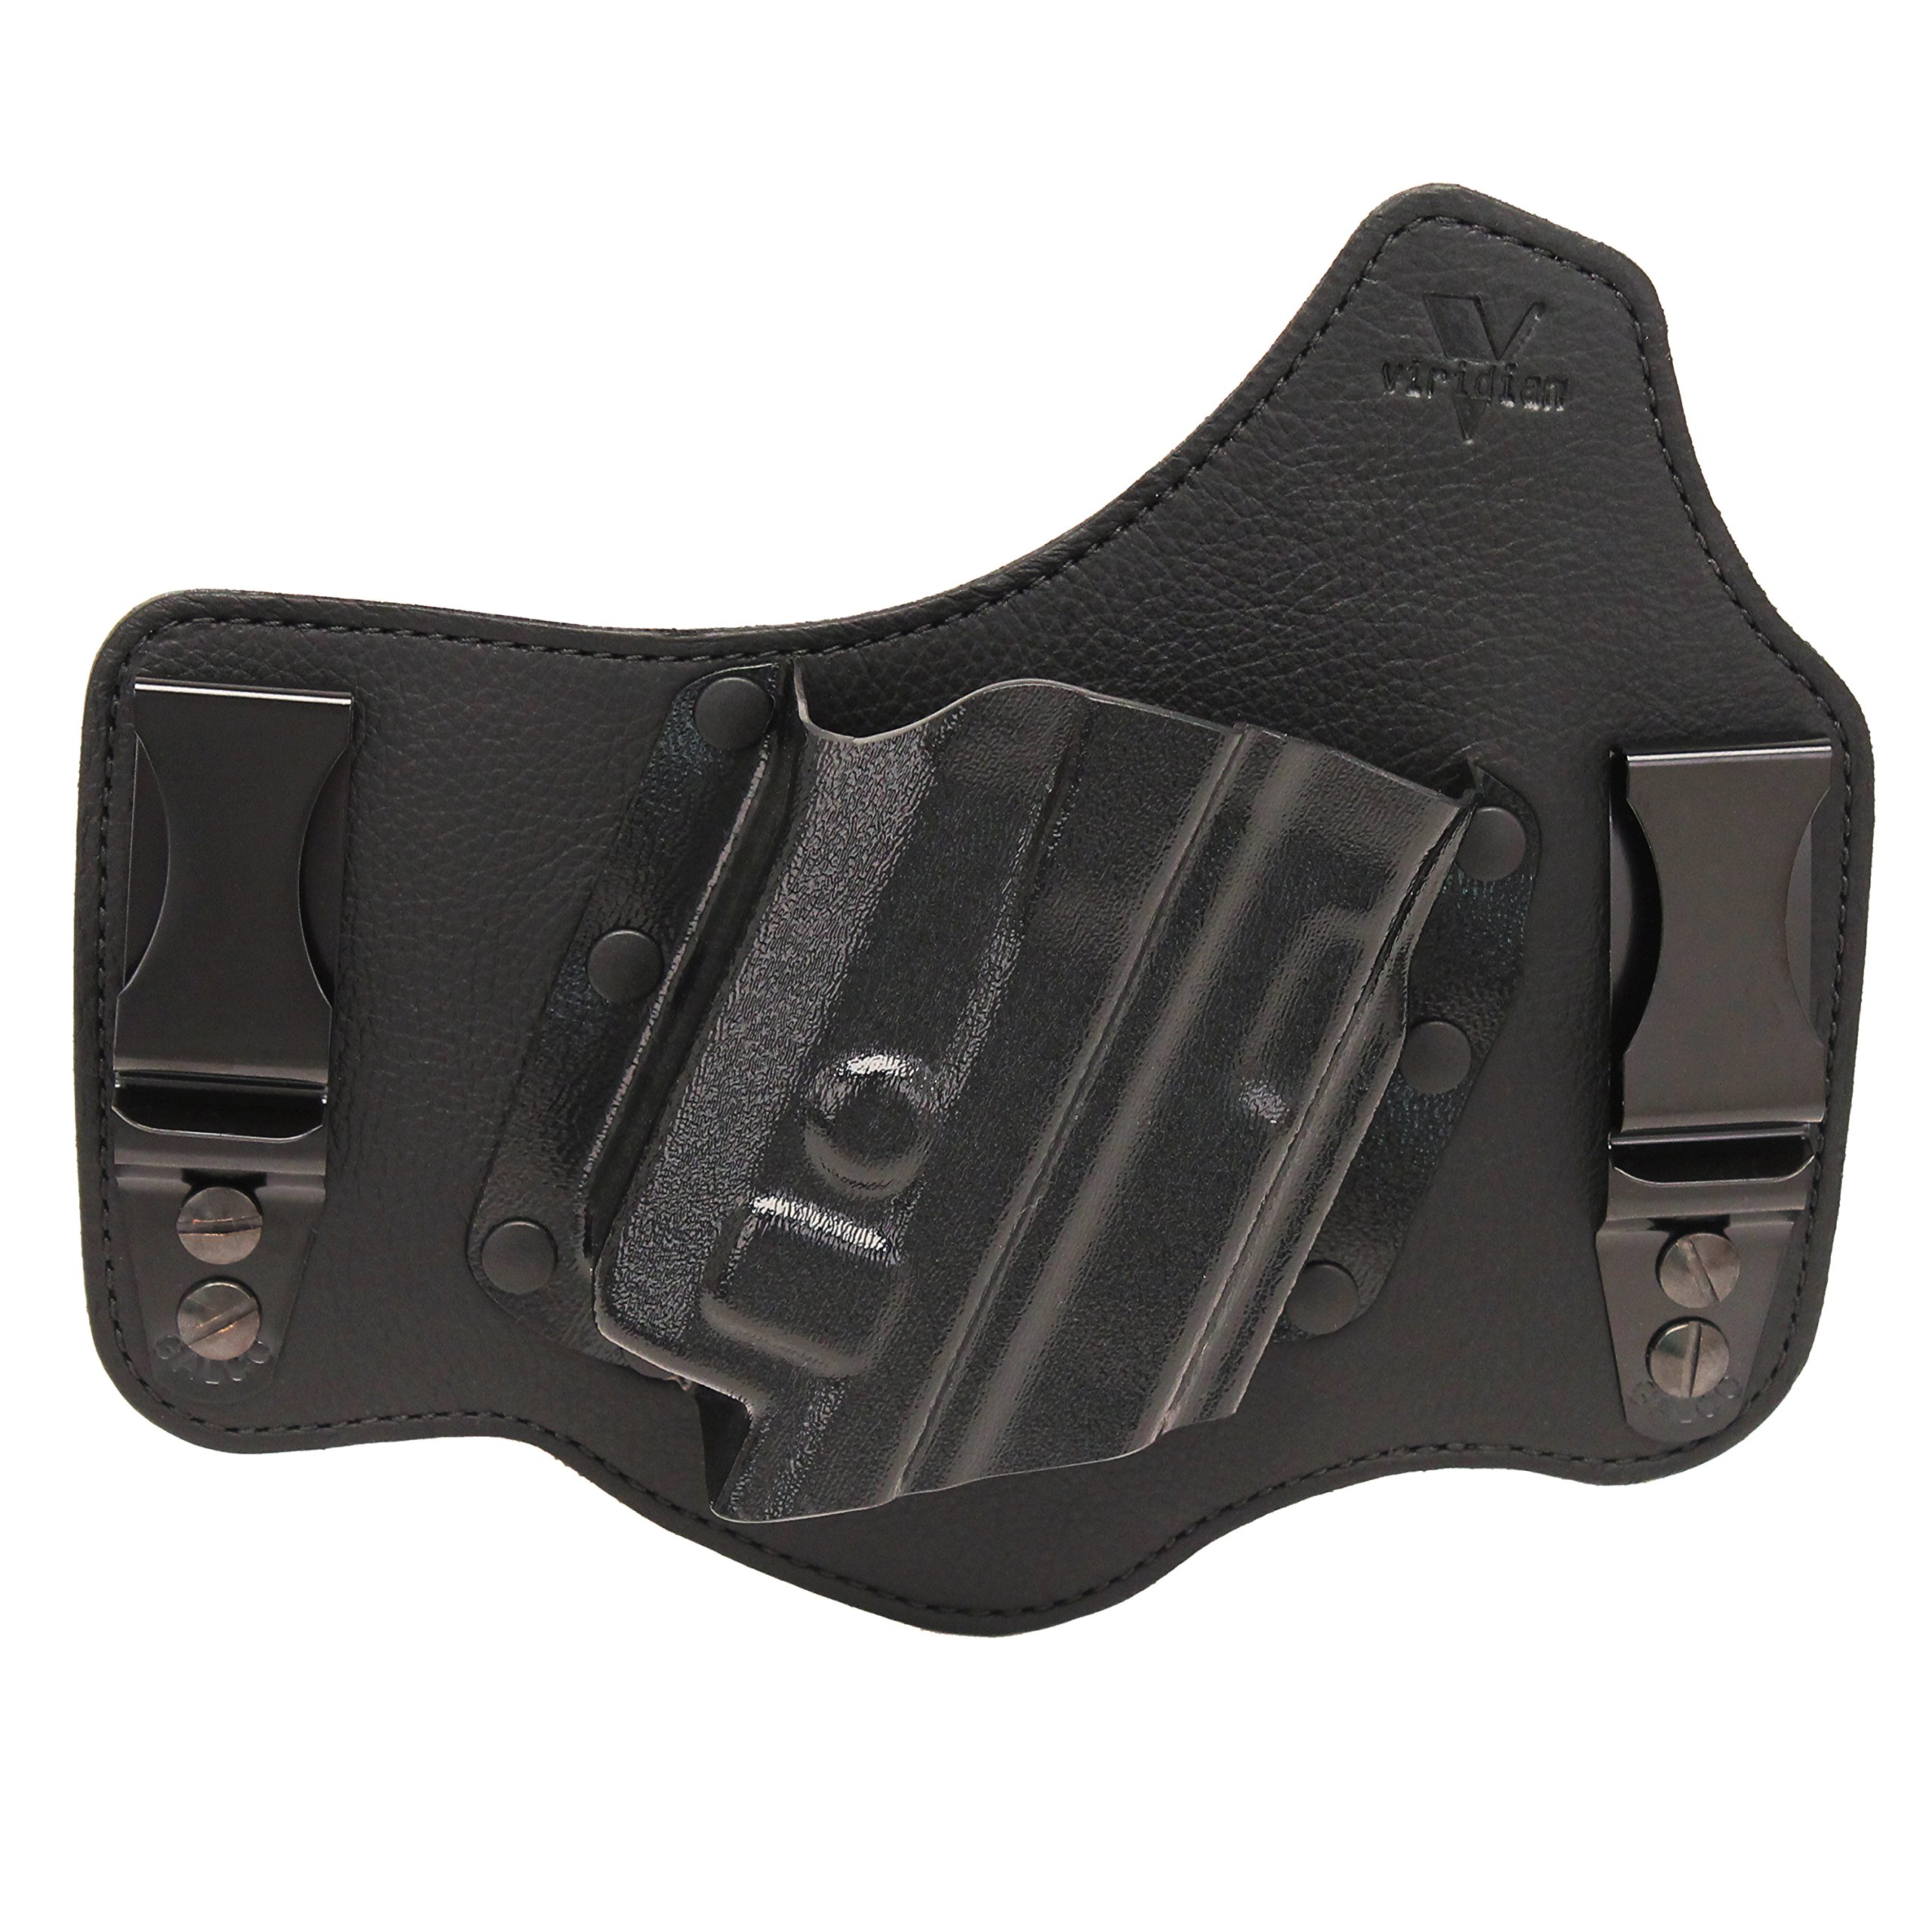 VIRIDIAN WEAPON TECHNOLOGIES, Galco King Tuk IWB, Smith & Wesson M&P 9/40 by VIRIDIAN WEAPON TECHNOLOGIES